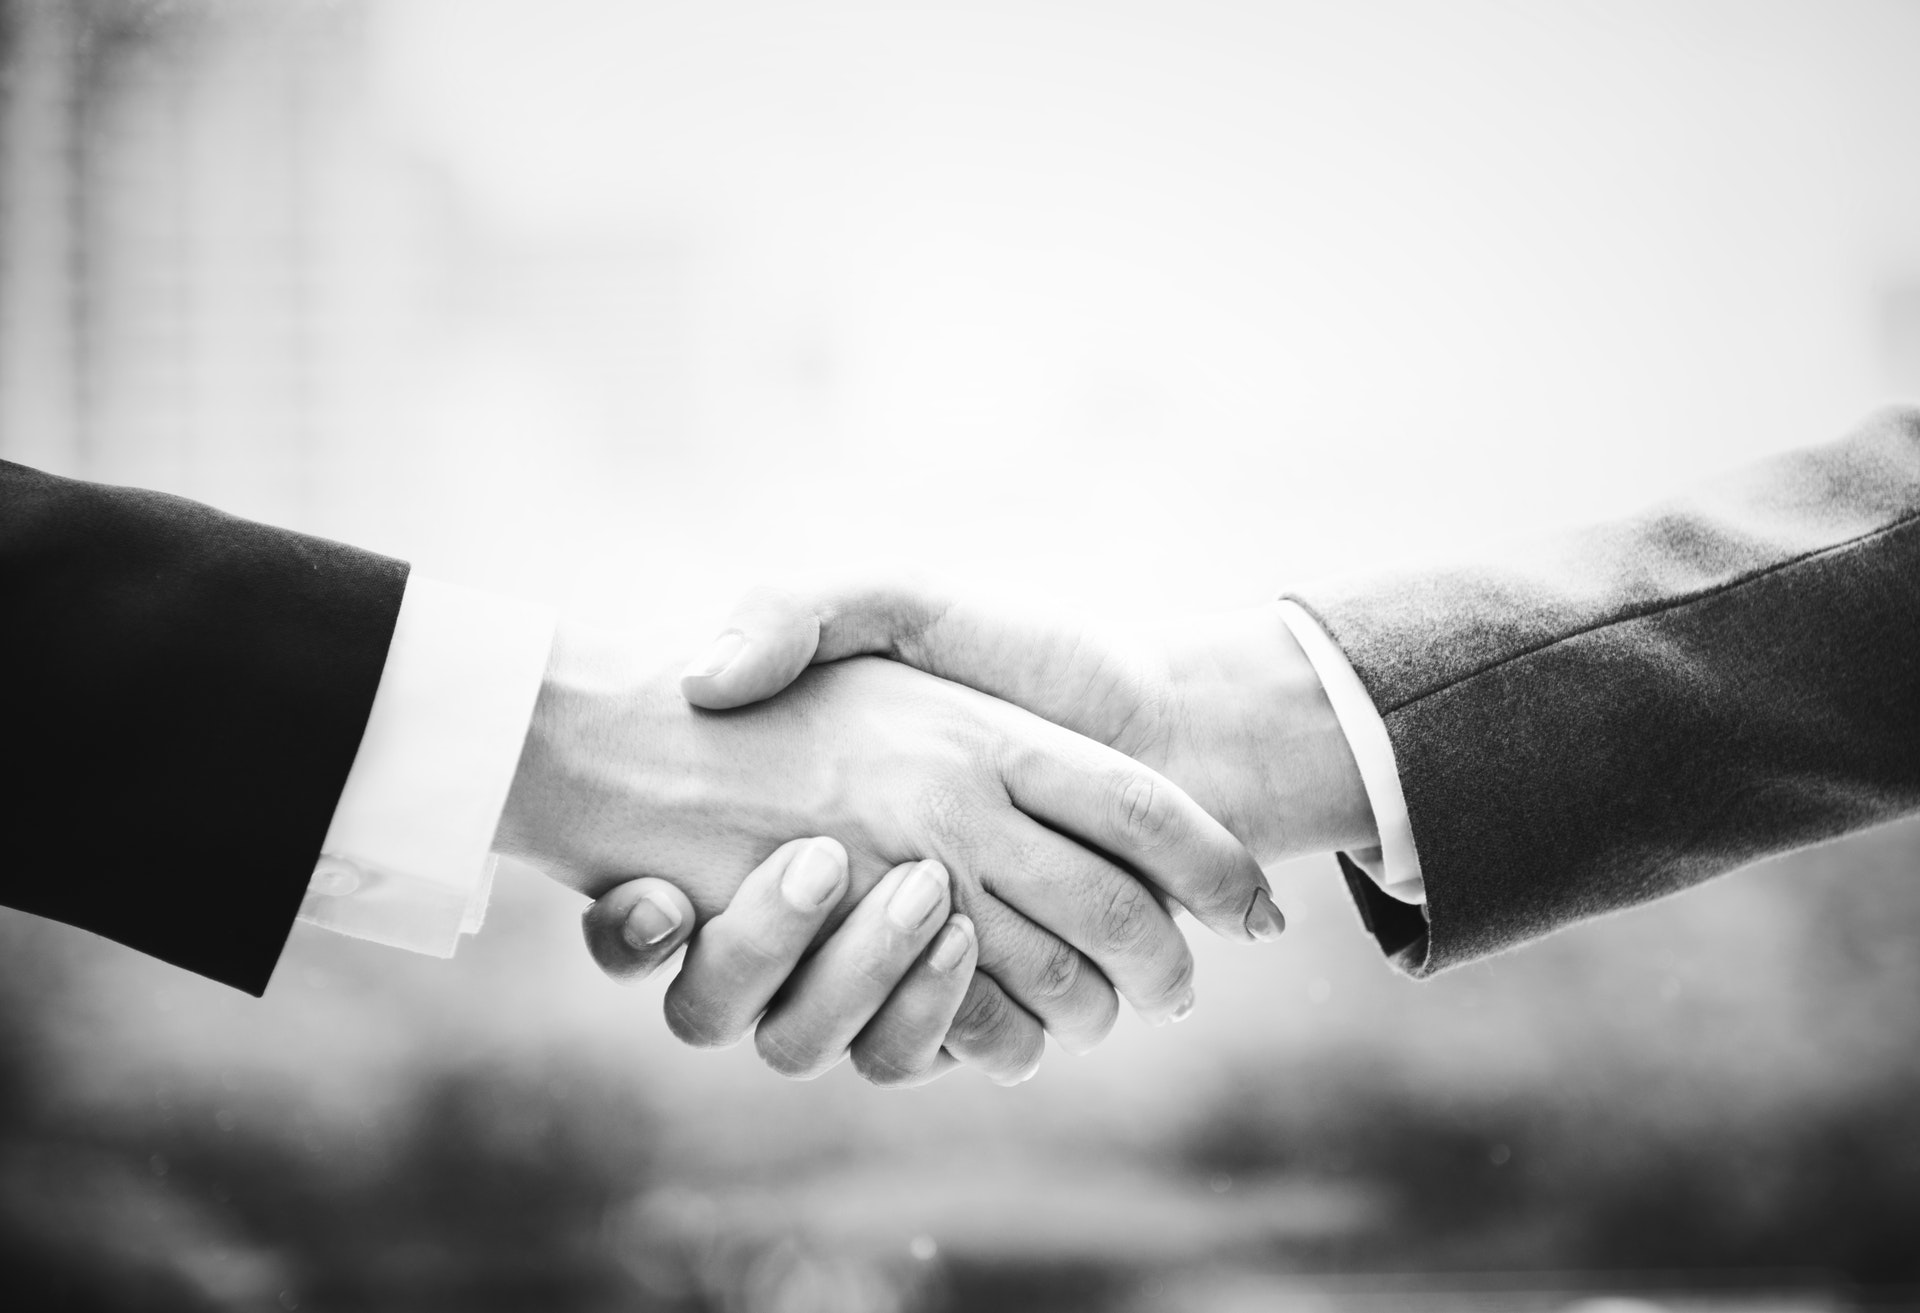 black and white photograph of a handshake